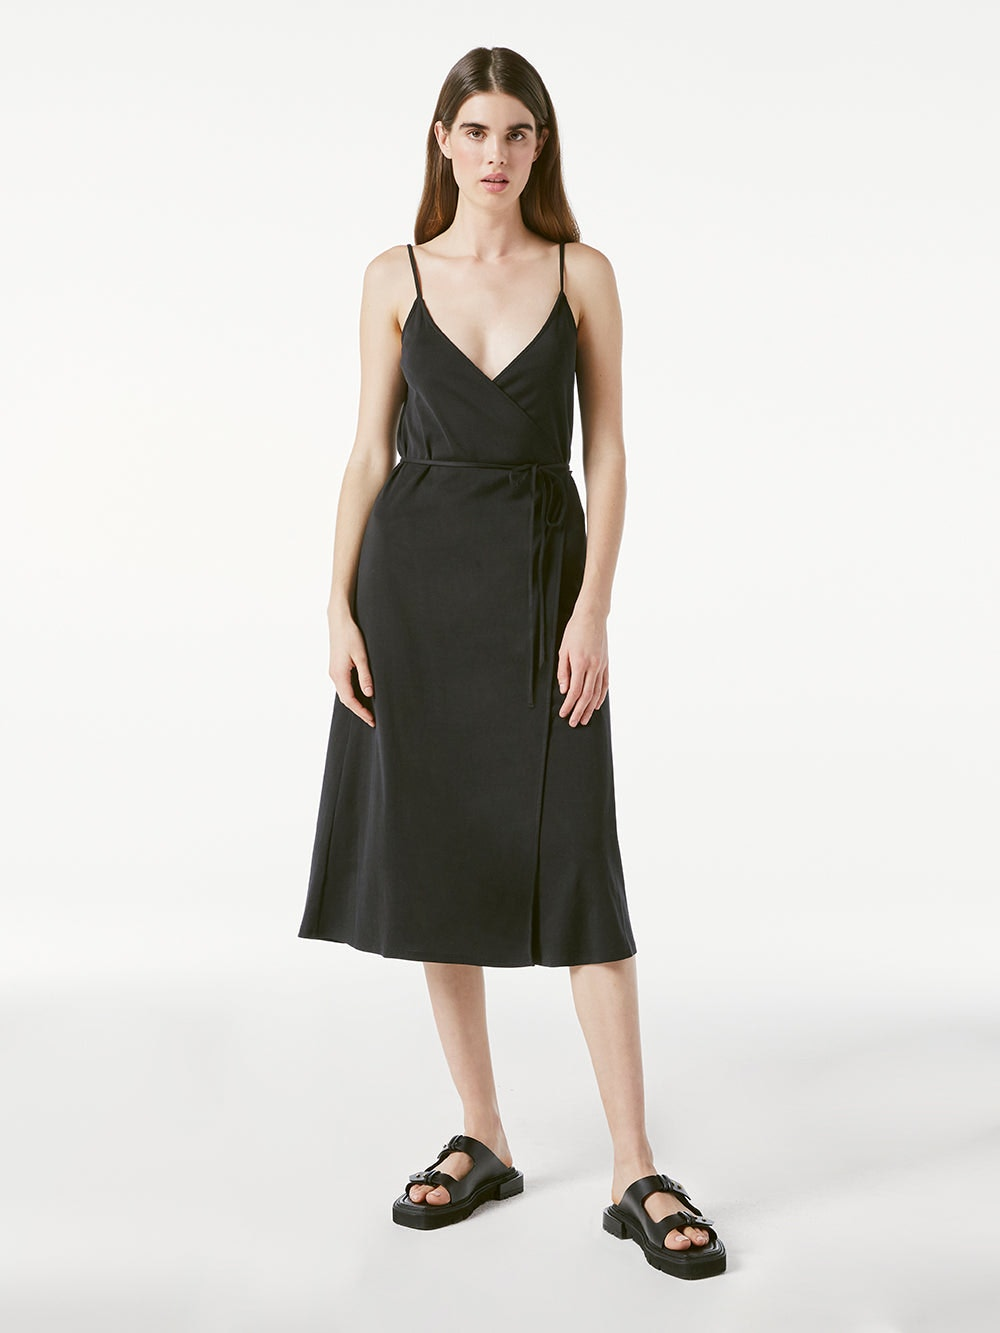 dress front full body view 2